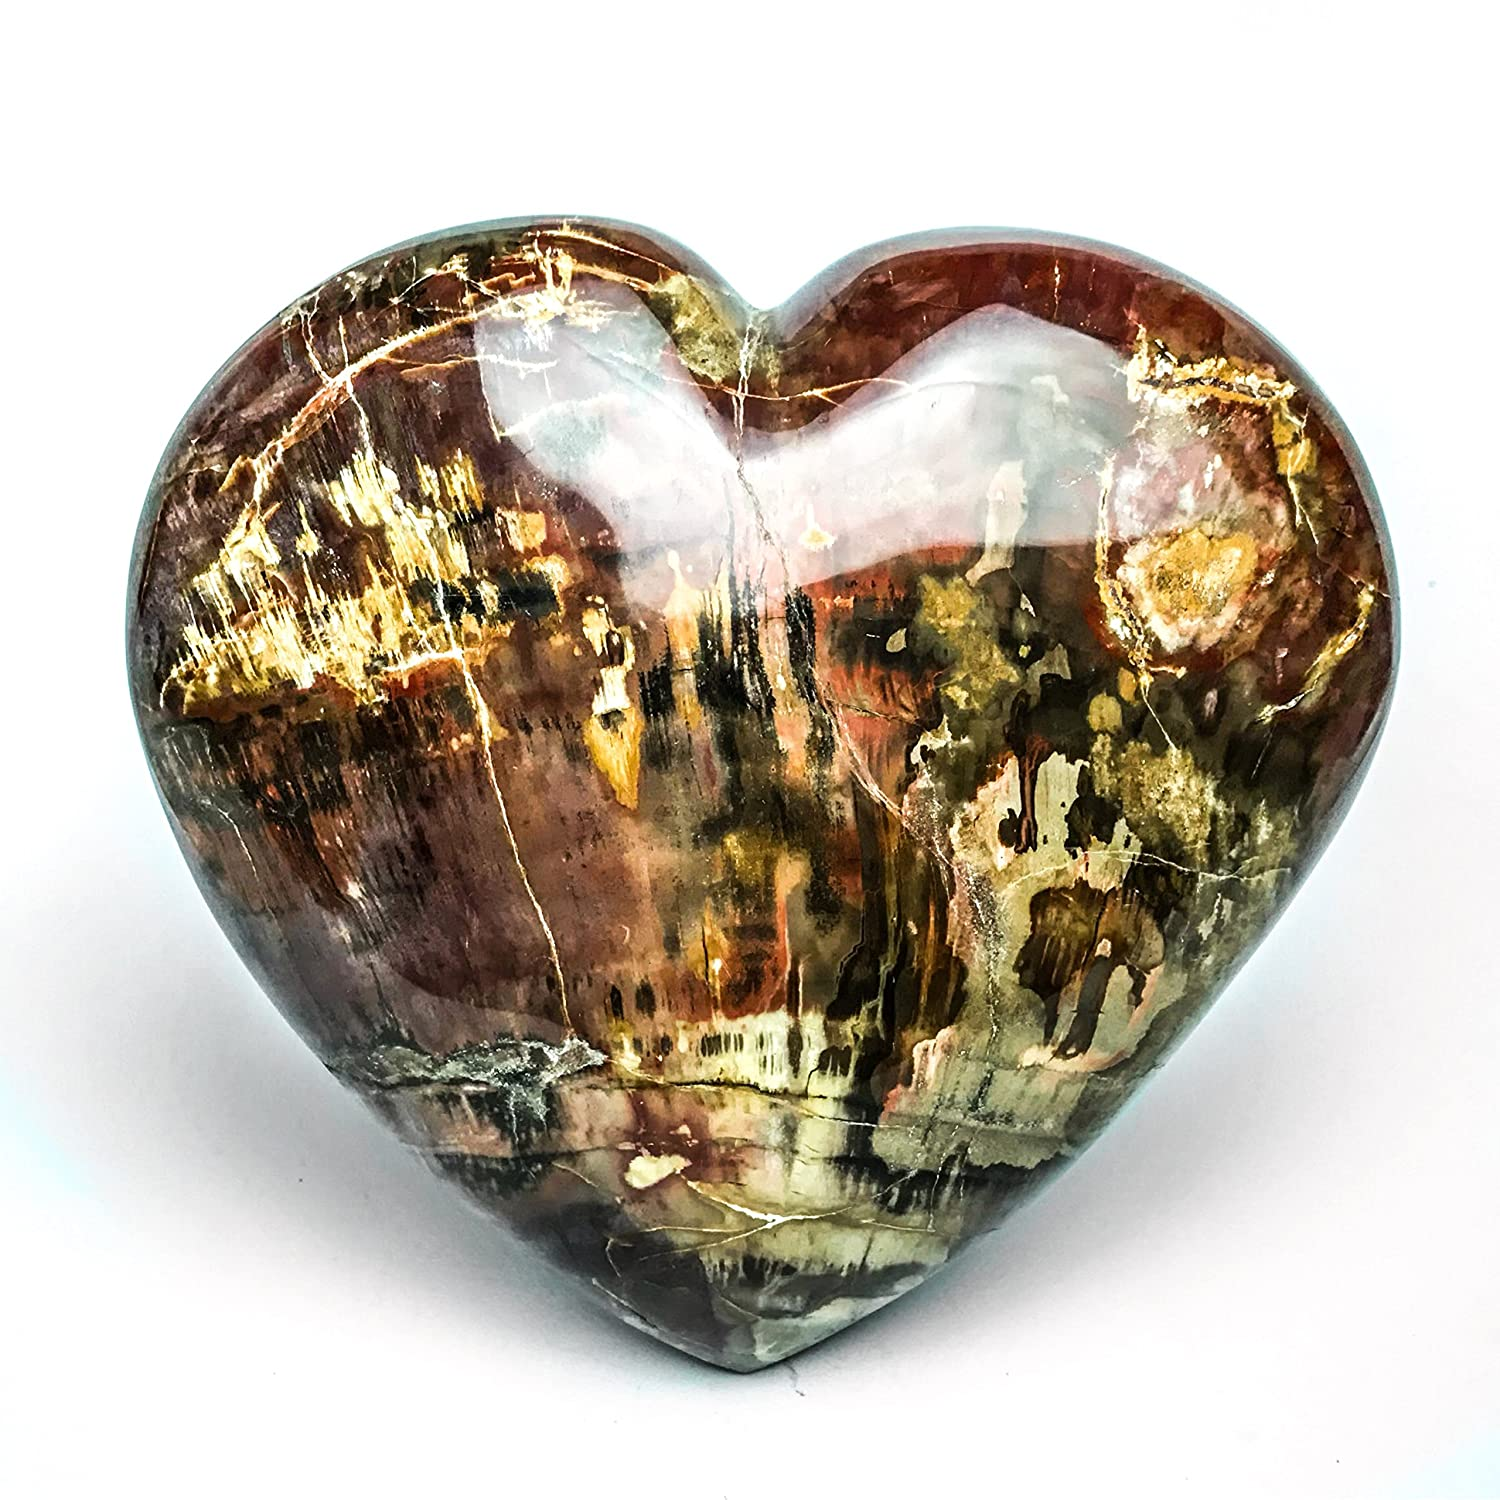 Astro Gallery Of Gems Petrified Wood Heart from Madagascar – pw-h1